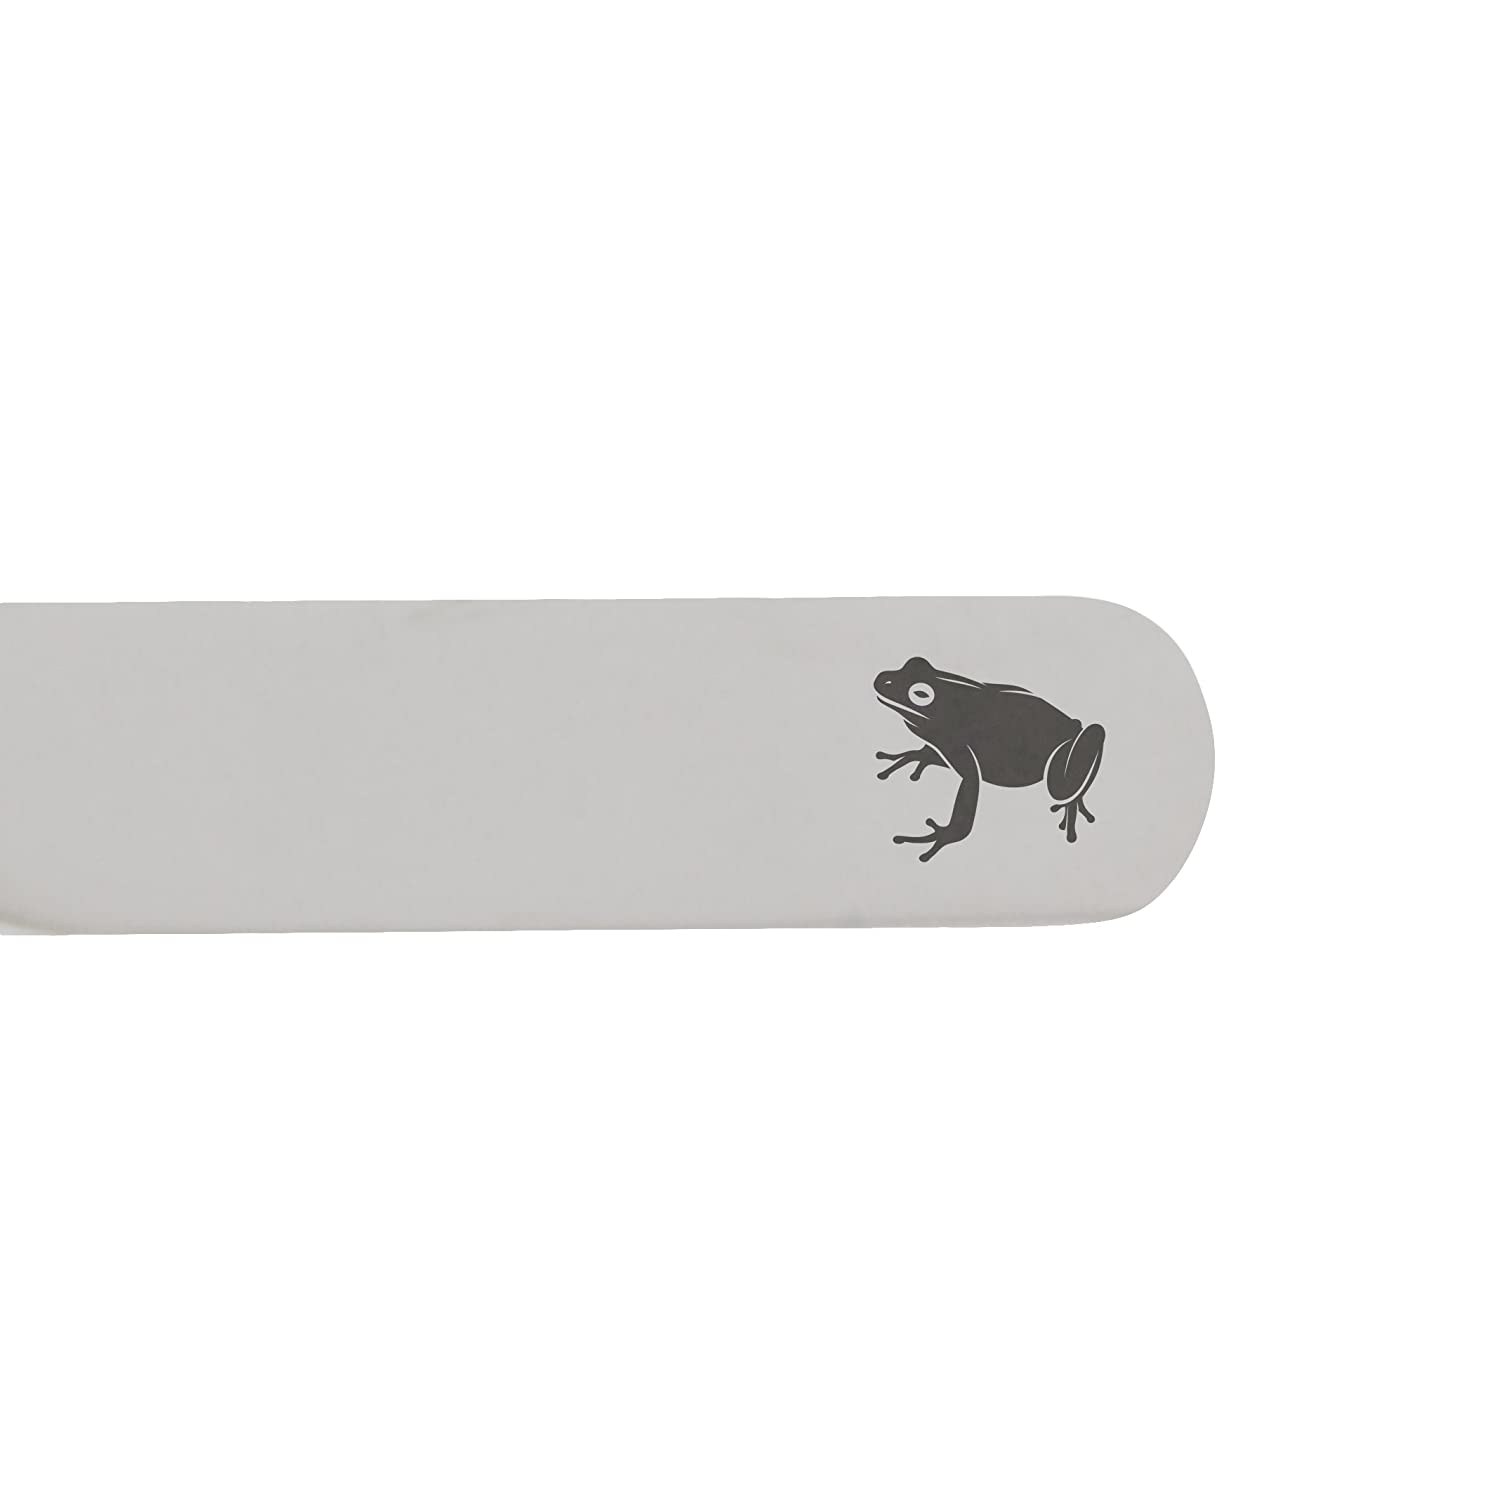 MODERN GOODS SHOP Stainless Steel Collar Stays With Laser Engraved Frog Design 2.5 Inch Metal Collar Stiffeners Made In USA